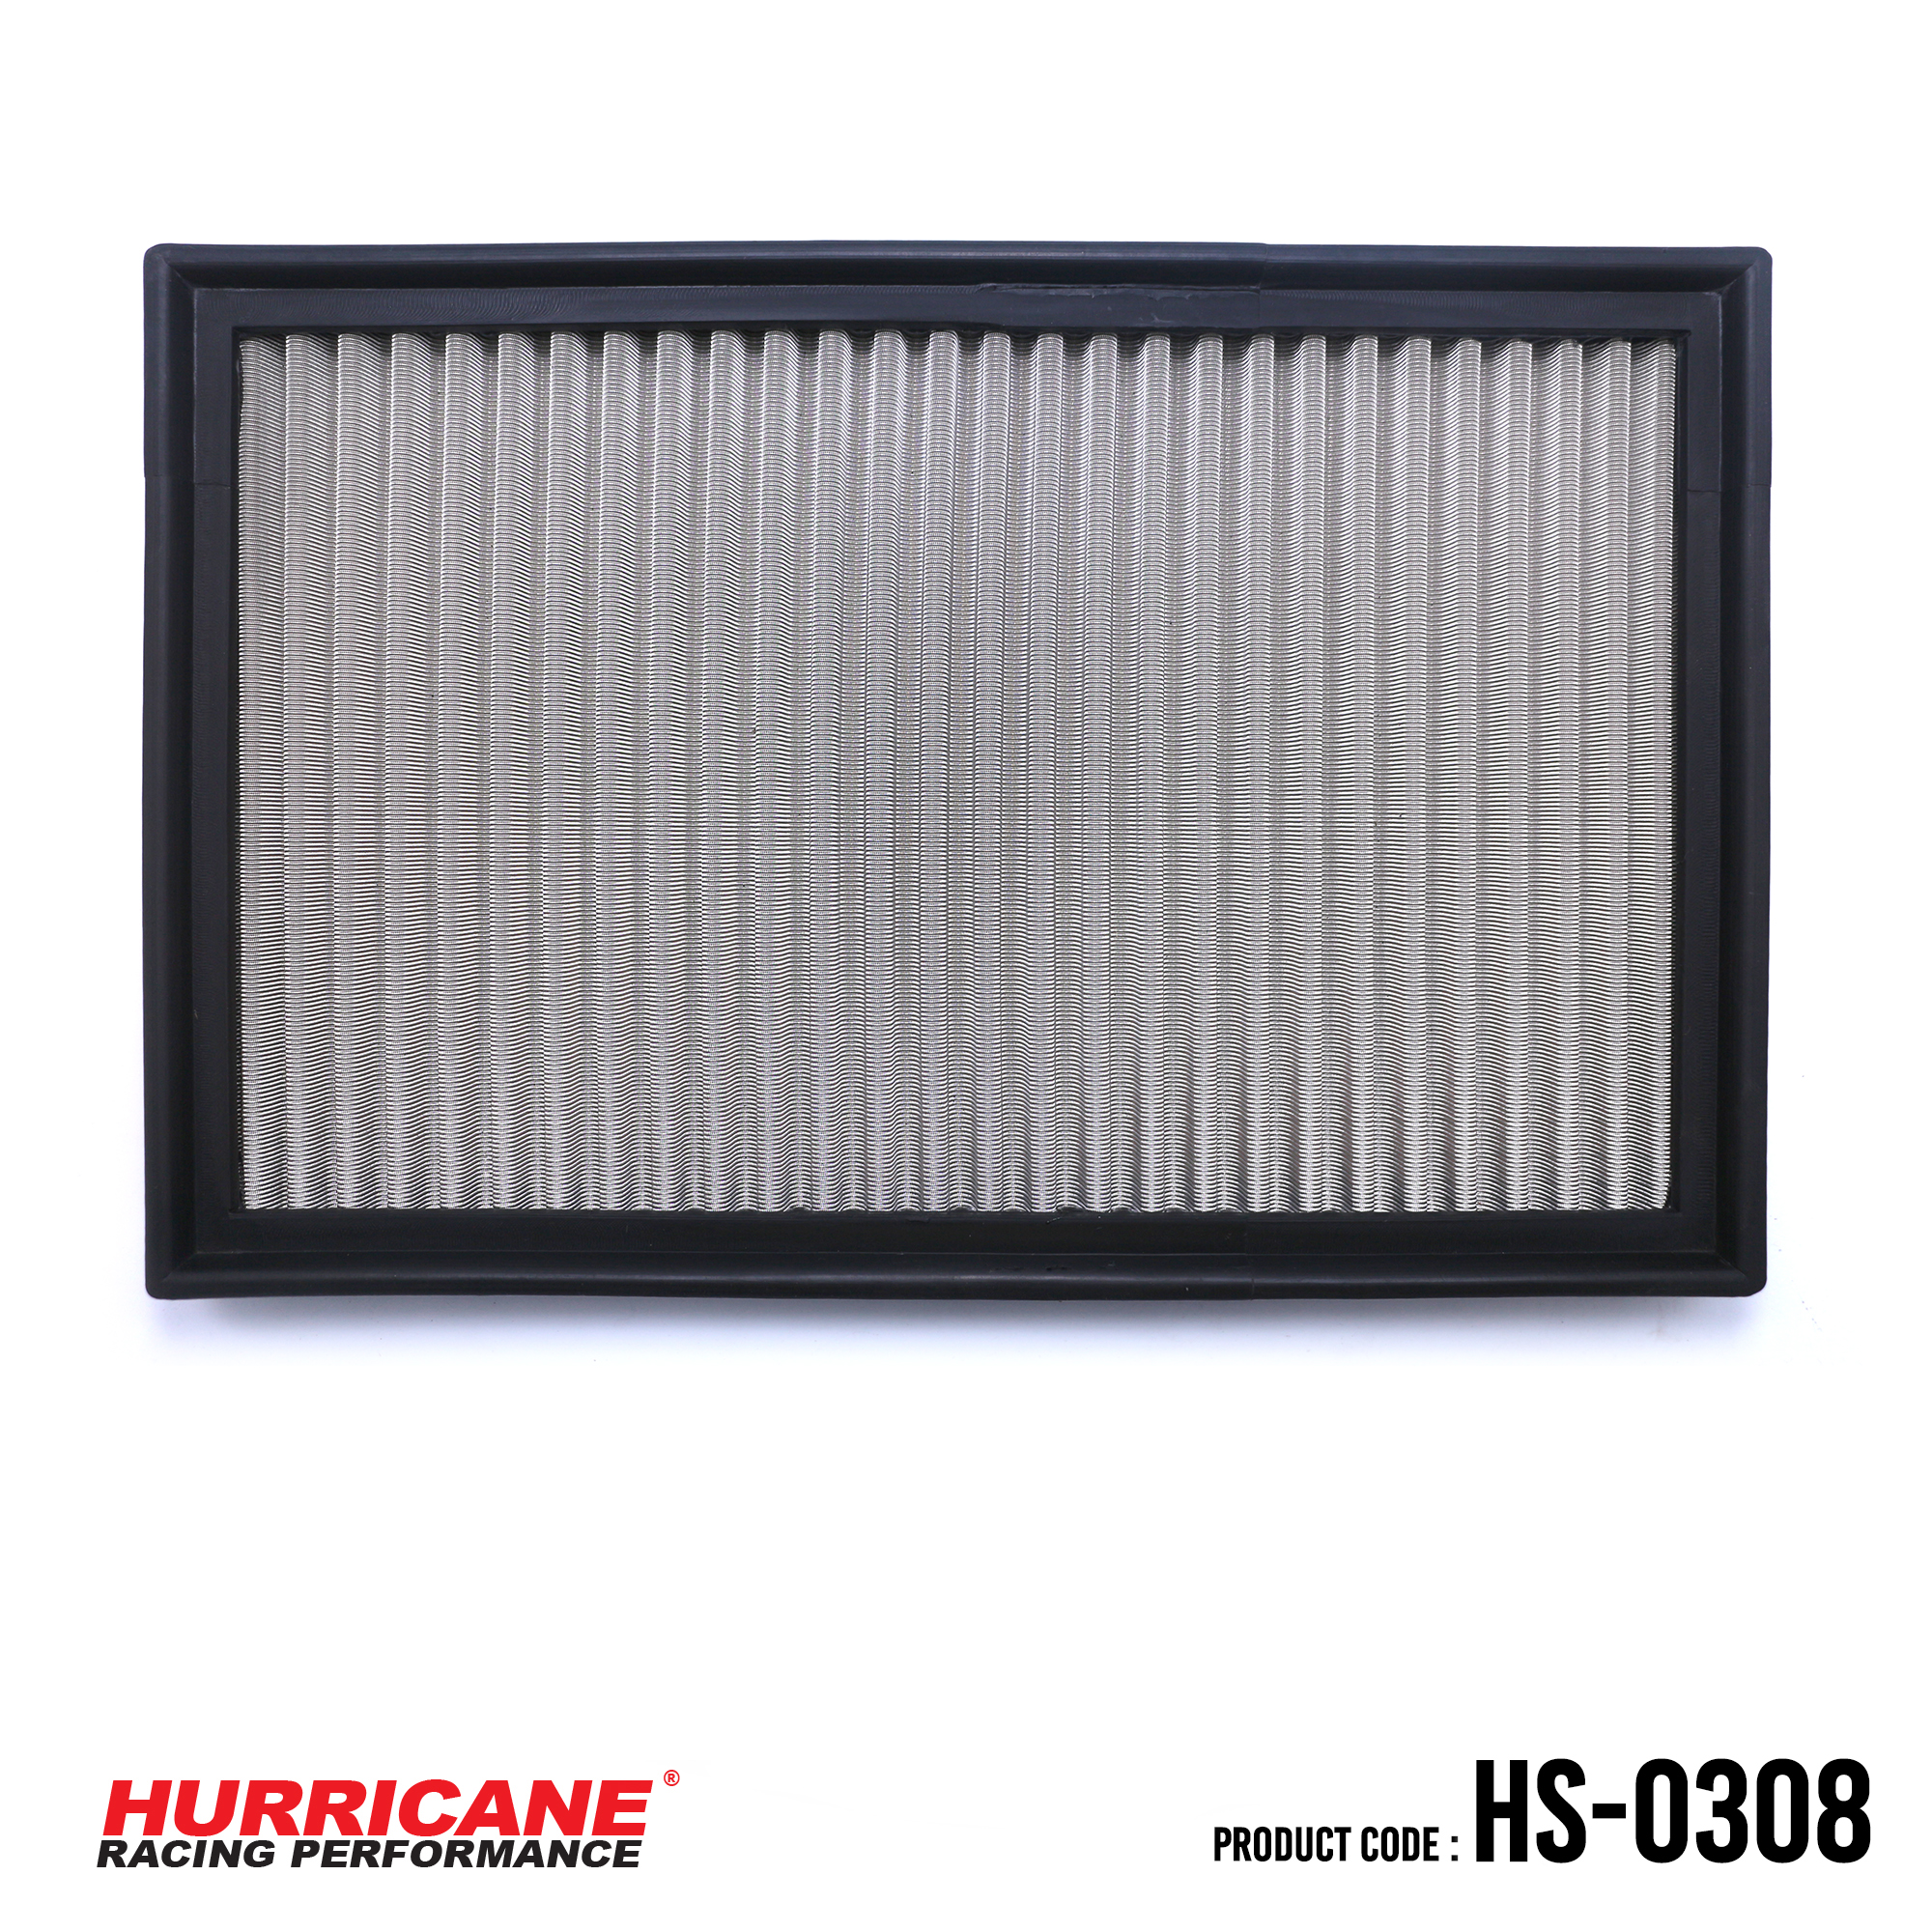 HURRICANE STAINLESS STEEL AIR FILTER FOR HS-0308 Kia